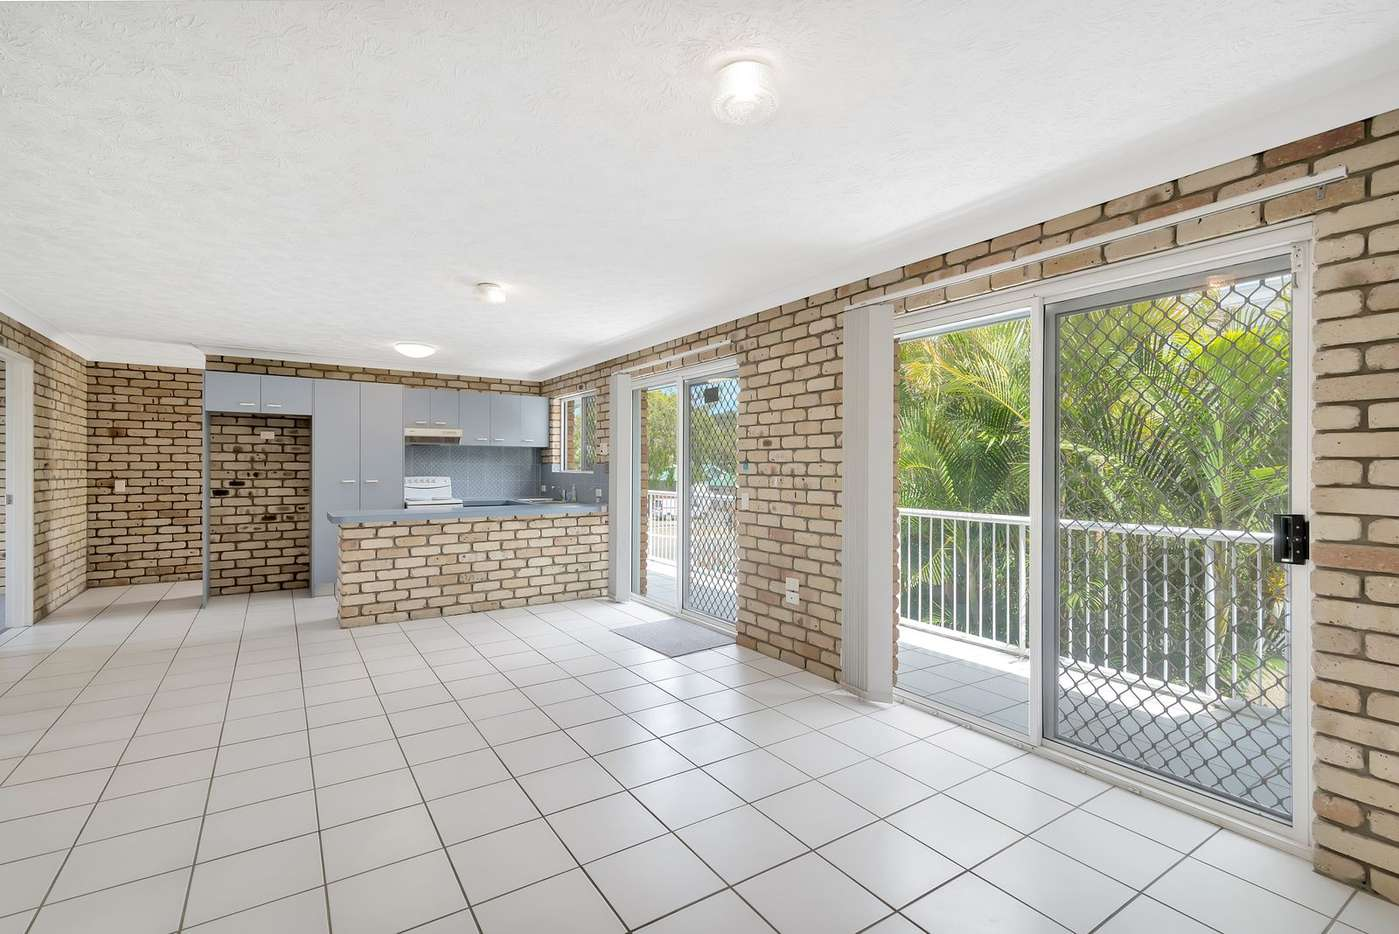 Main view of Homely unit listing, 2/8 Fenton Place, Currumbin, QLD 4223